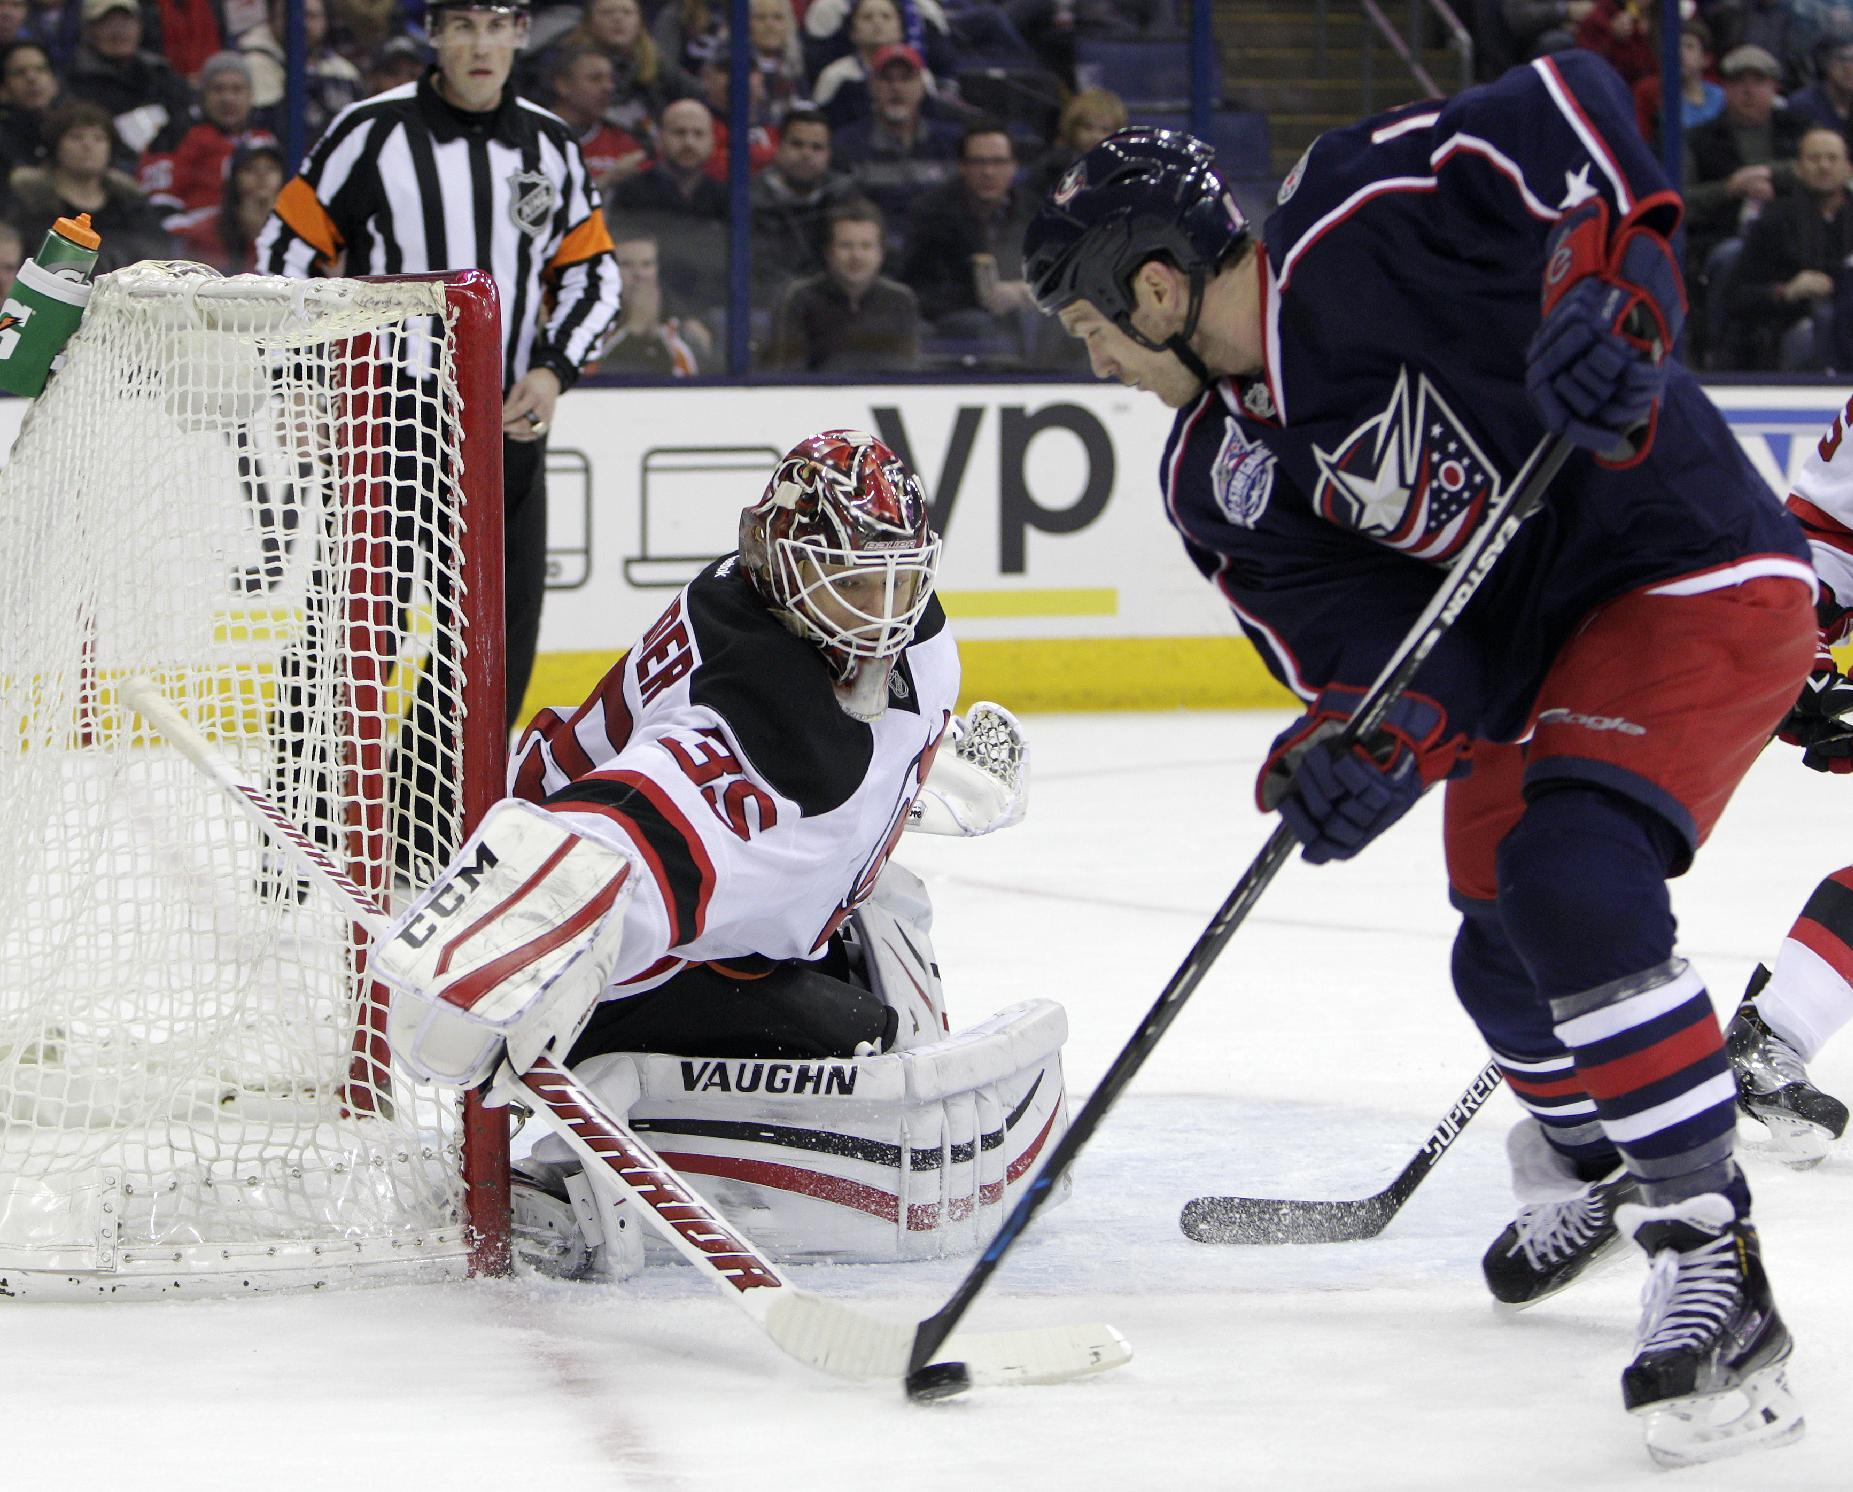 Cory Schneider's 33 saves lift Devils over Blue Jackets 2-0